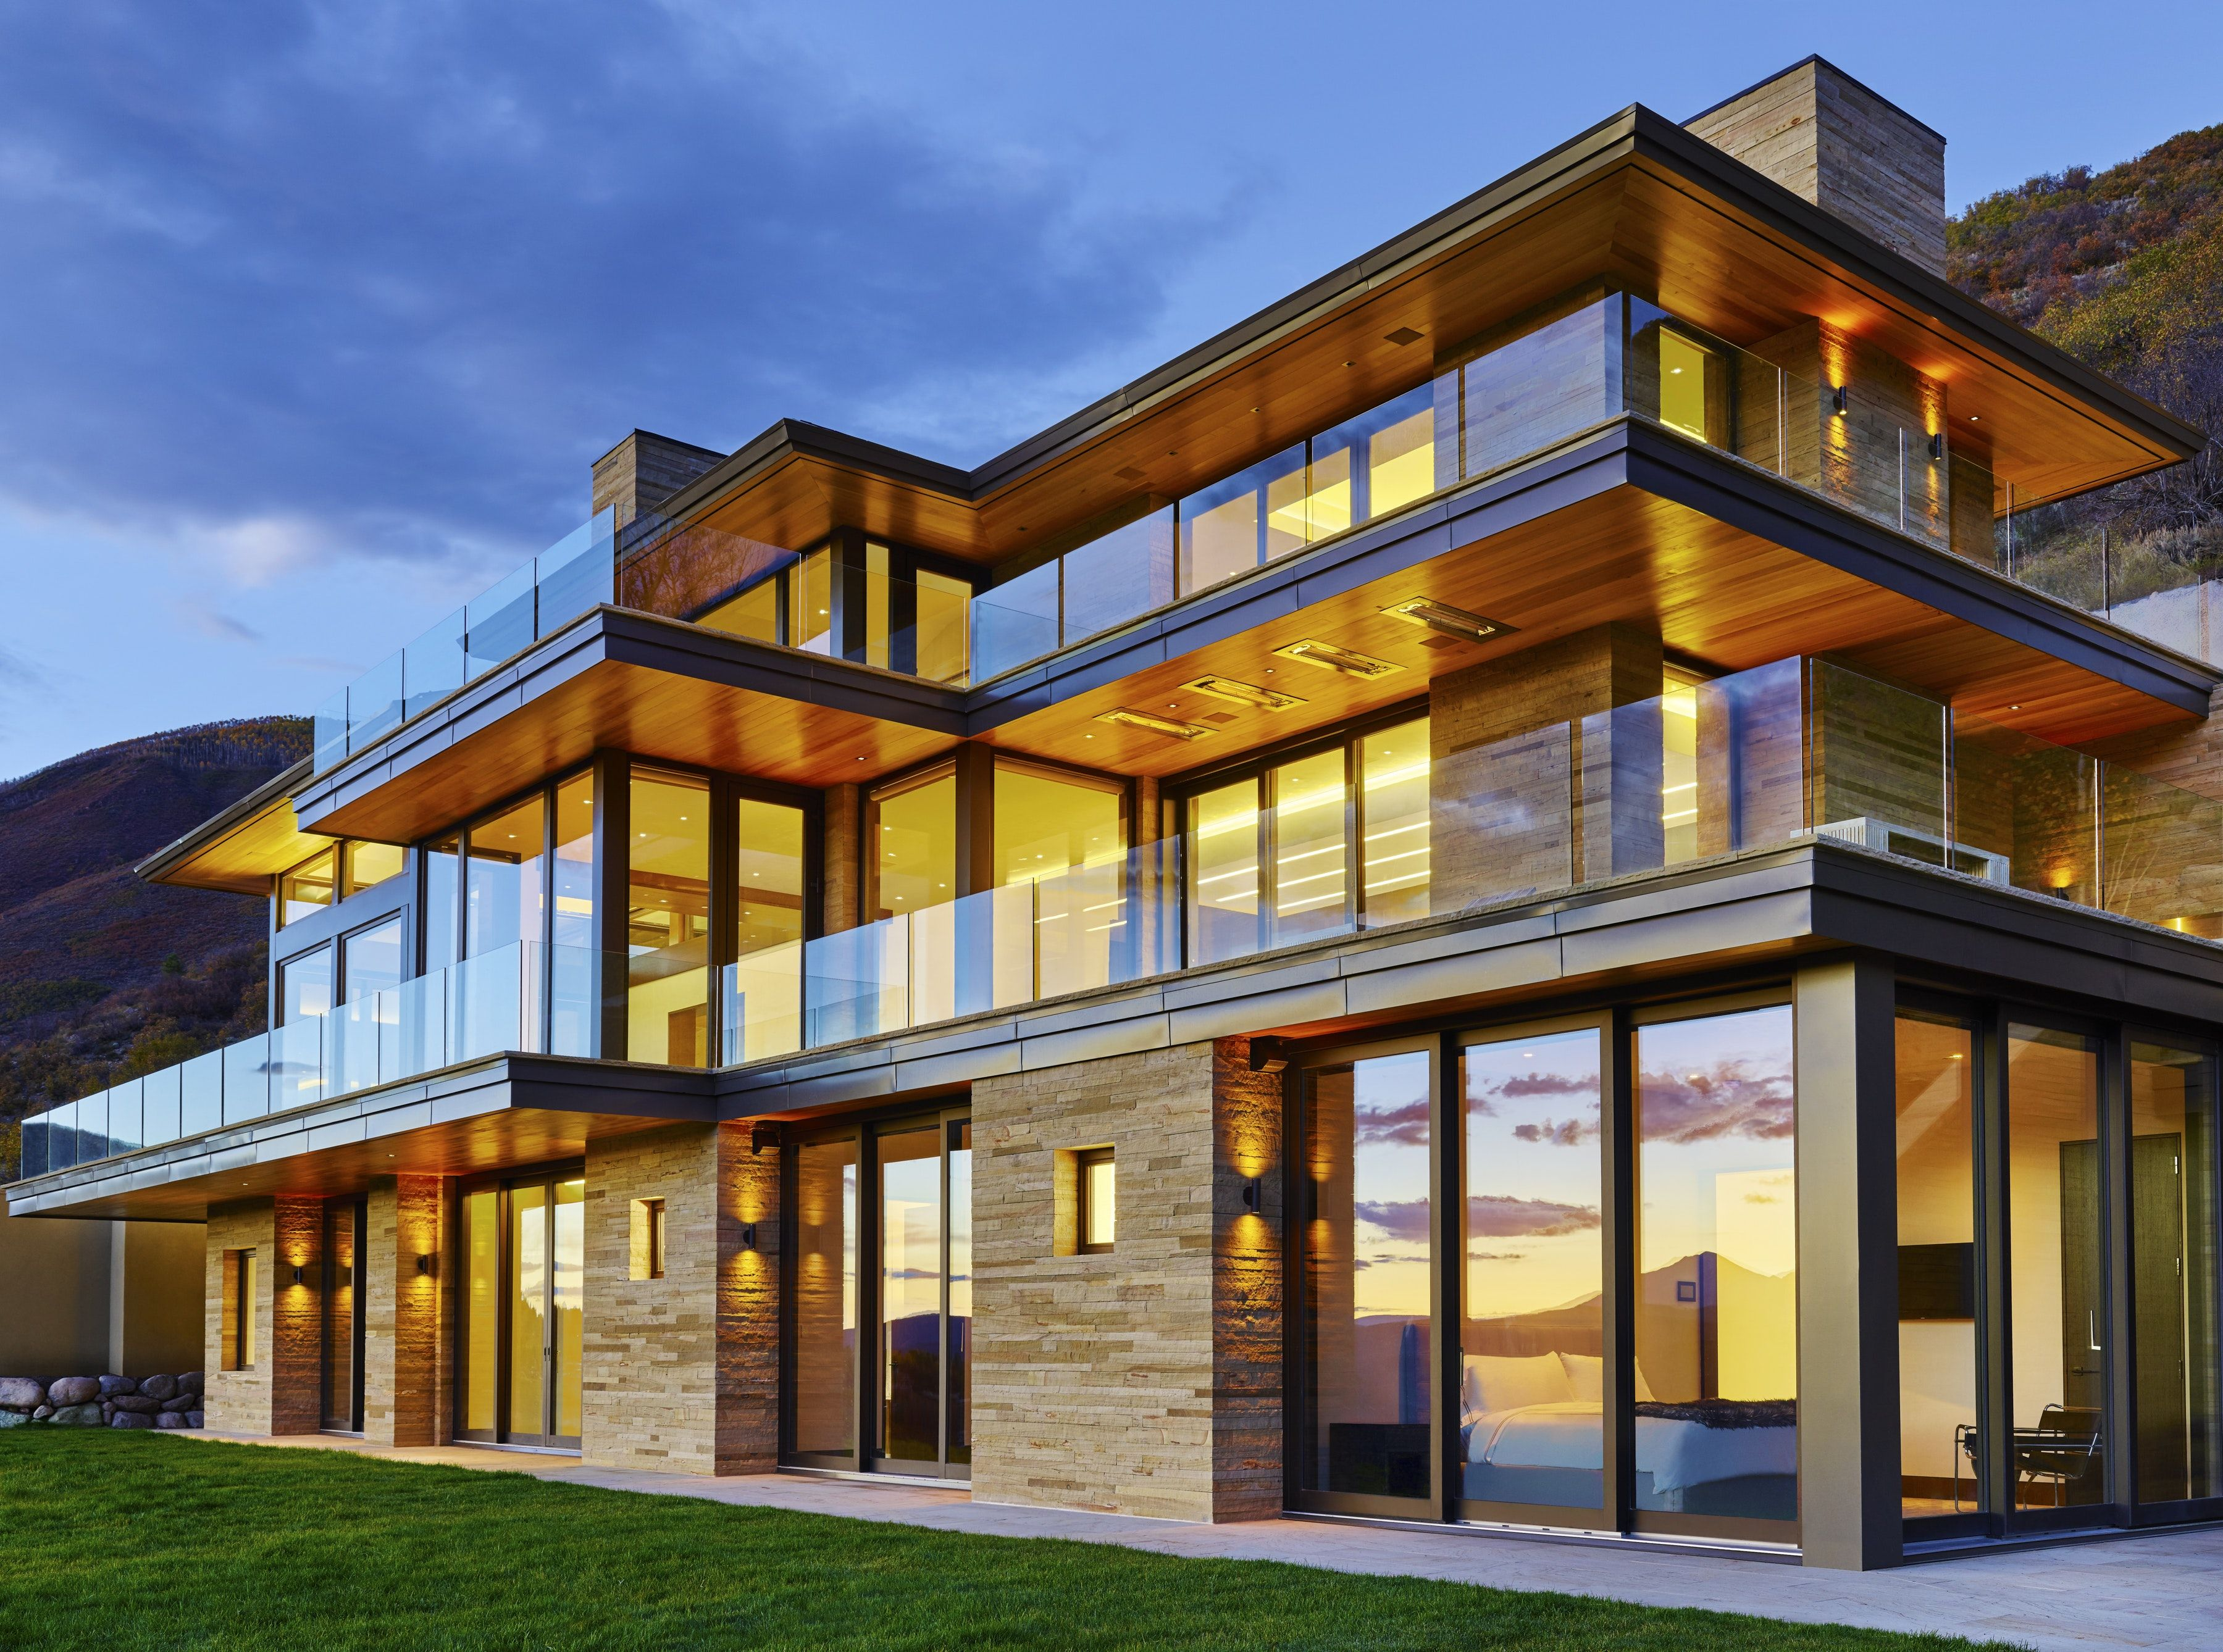 Mountain Home With Coursed Sandstone Veneer And Floor To Ceiling Windows Residential Architecture Architecture Portfolio Architecture